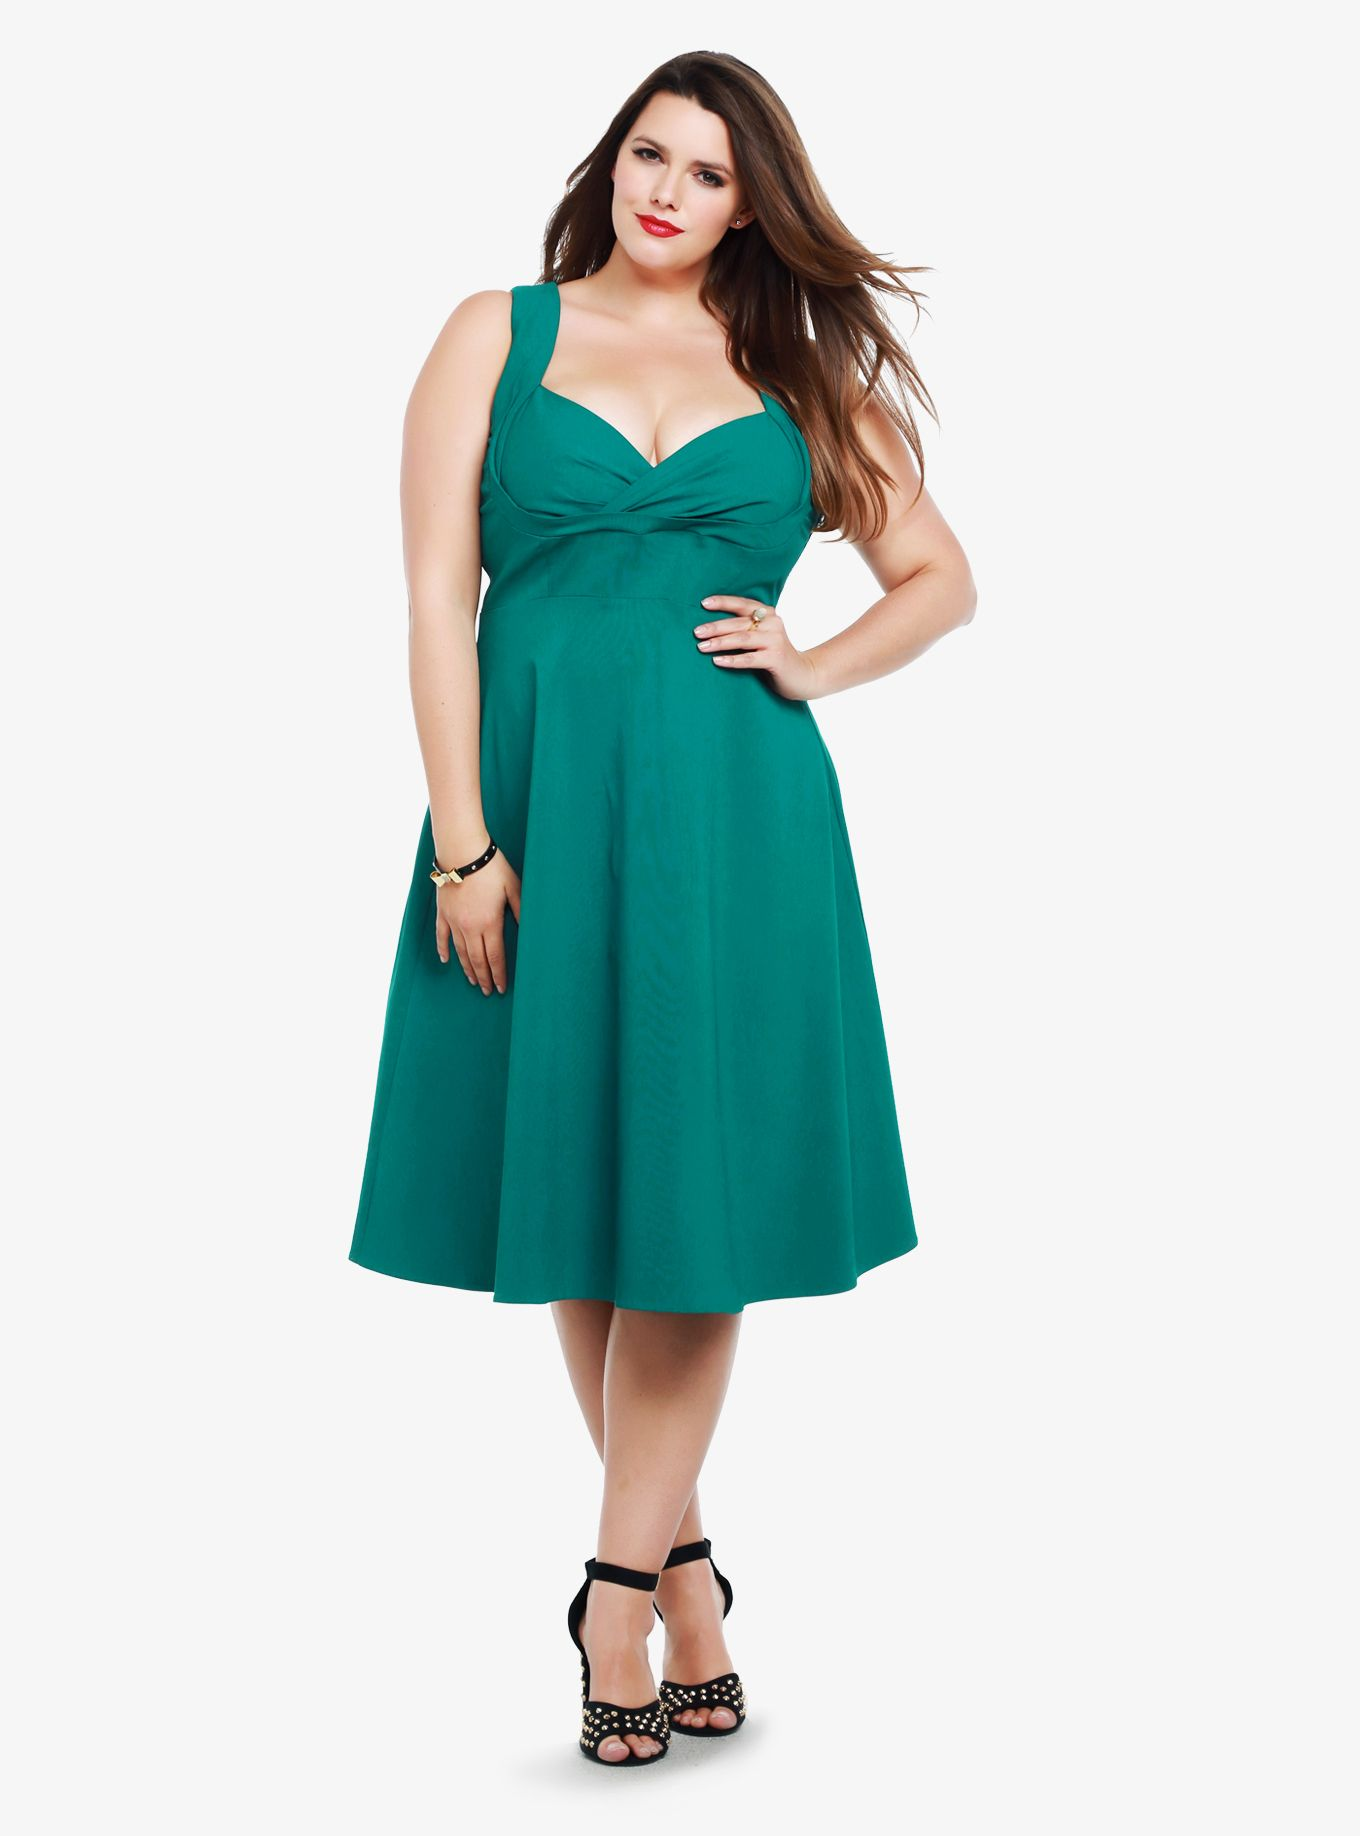 Torrid.com - The Destination for Trendy Plus-size Fashion and ...